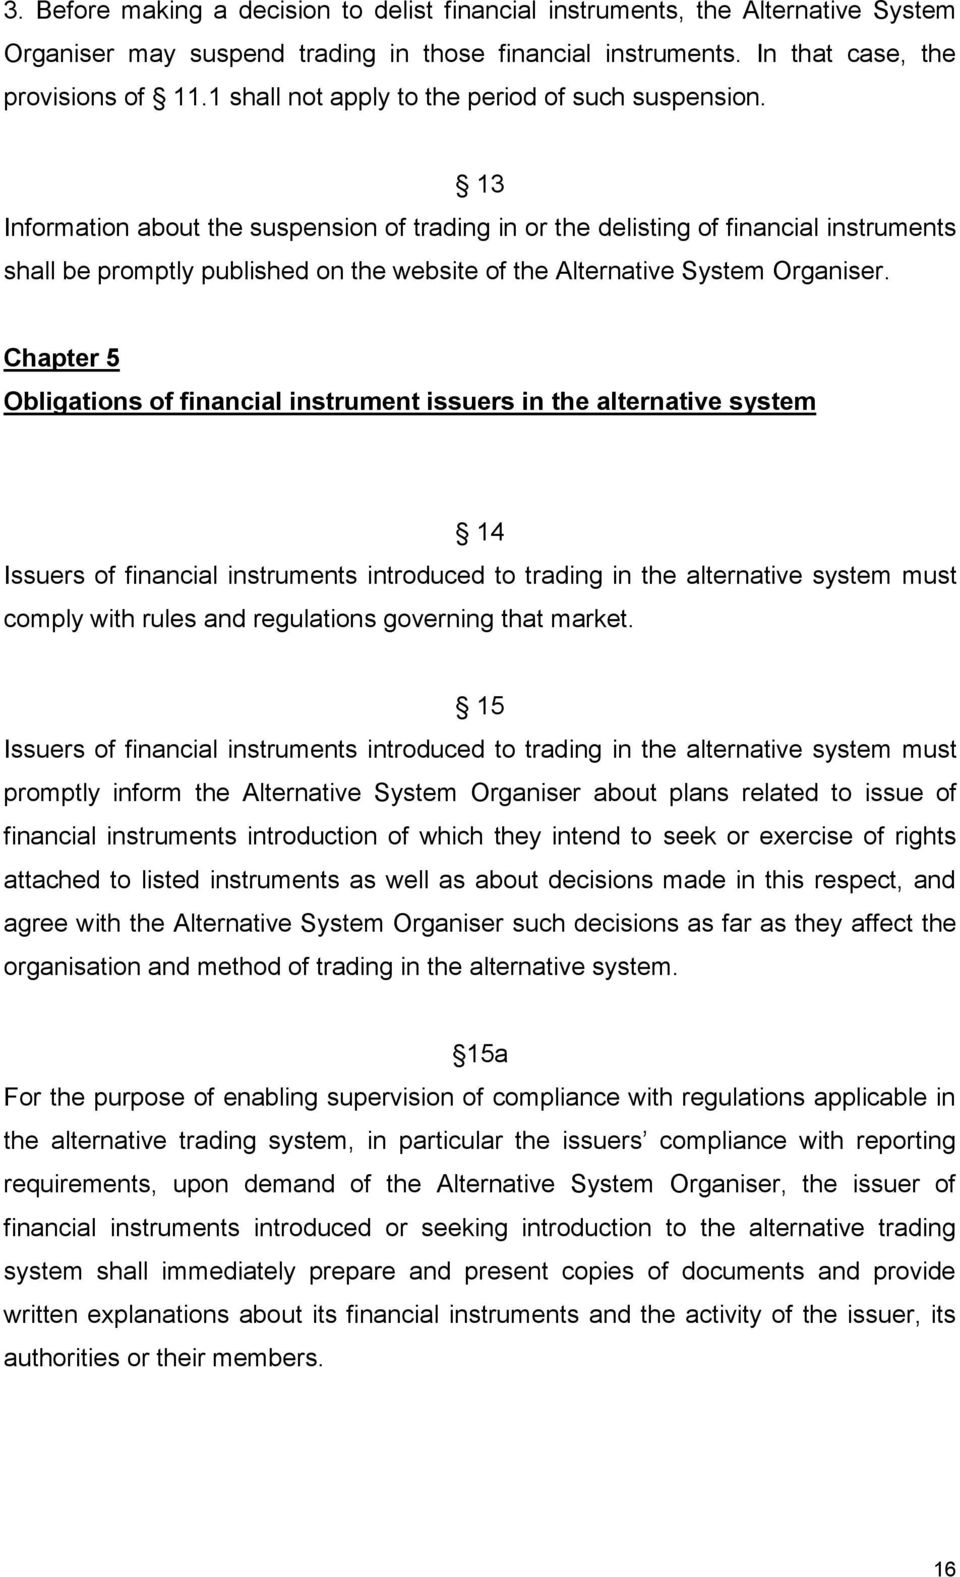 13 Information about the suspension of trading in or the delisting of financial instruments shall be promptly published on the website of the Alternative System Organiser.